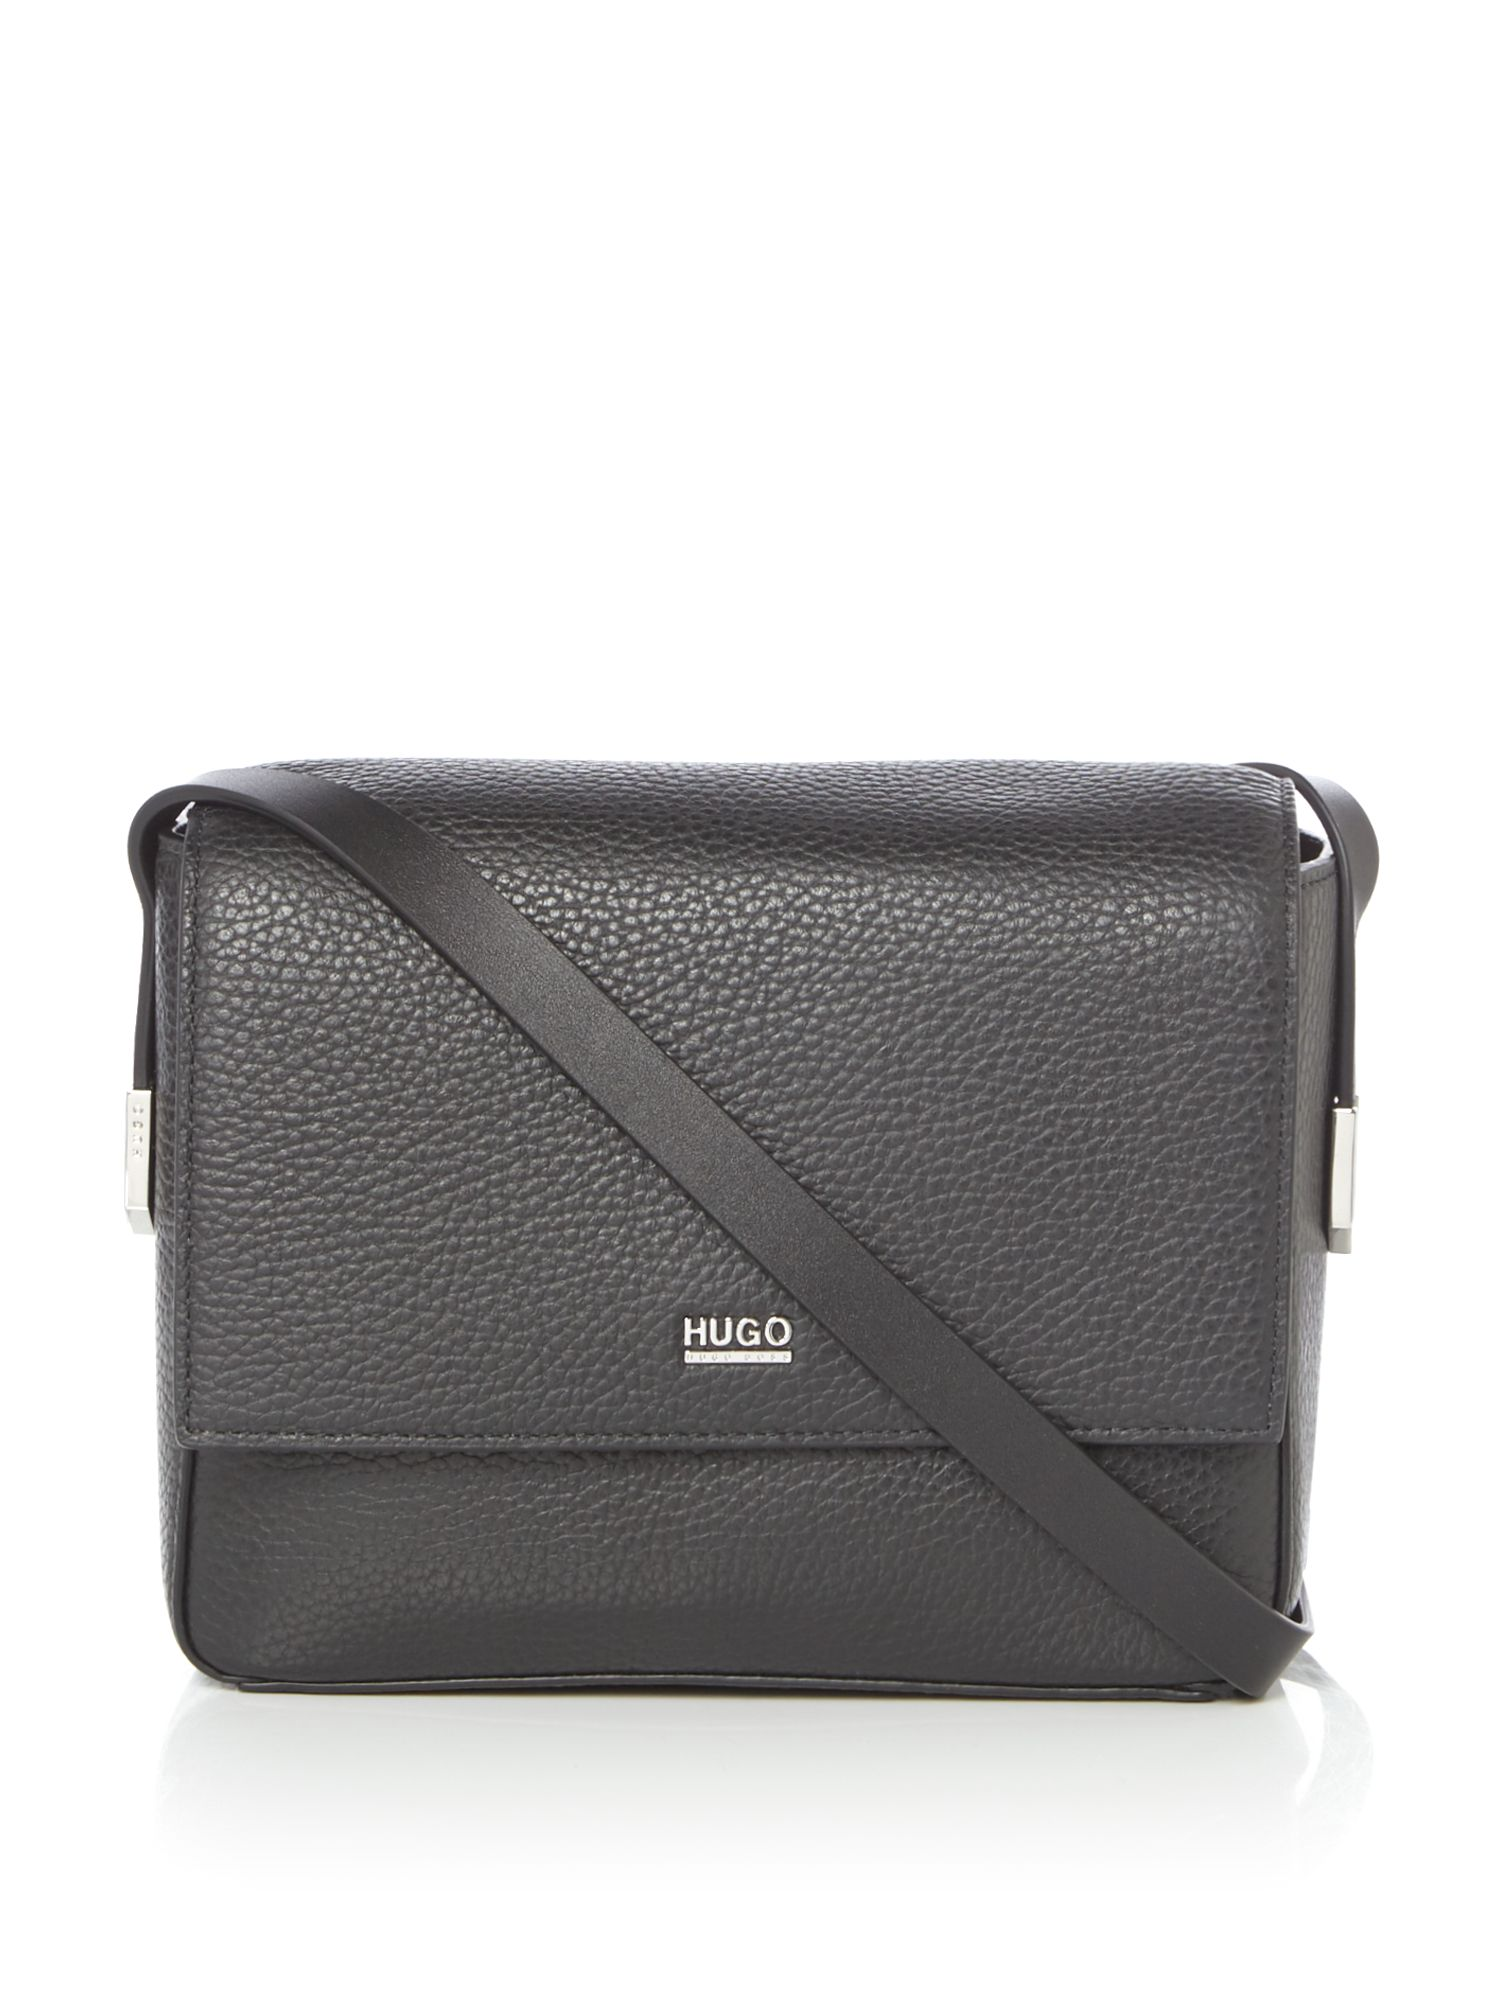 Hugo Boss Nynka shoulder bag Black